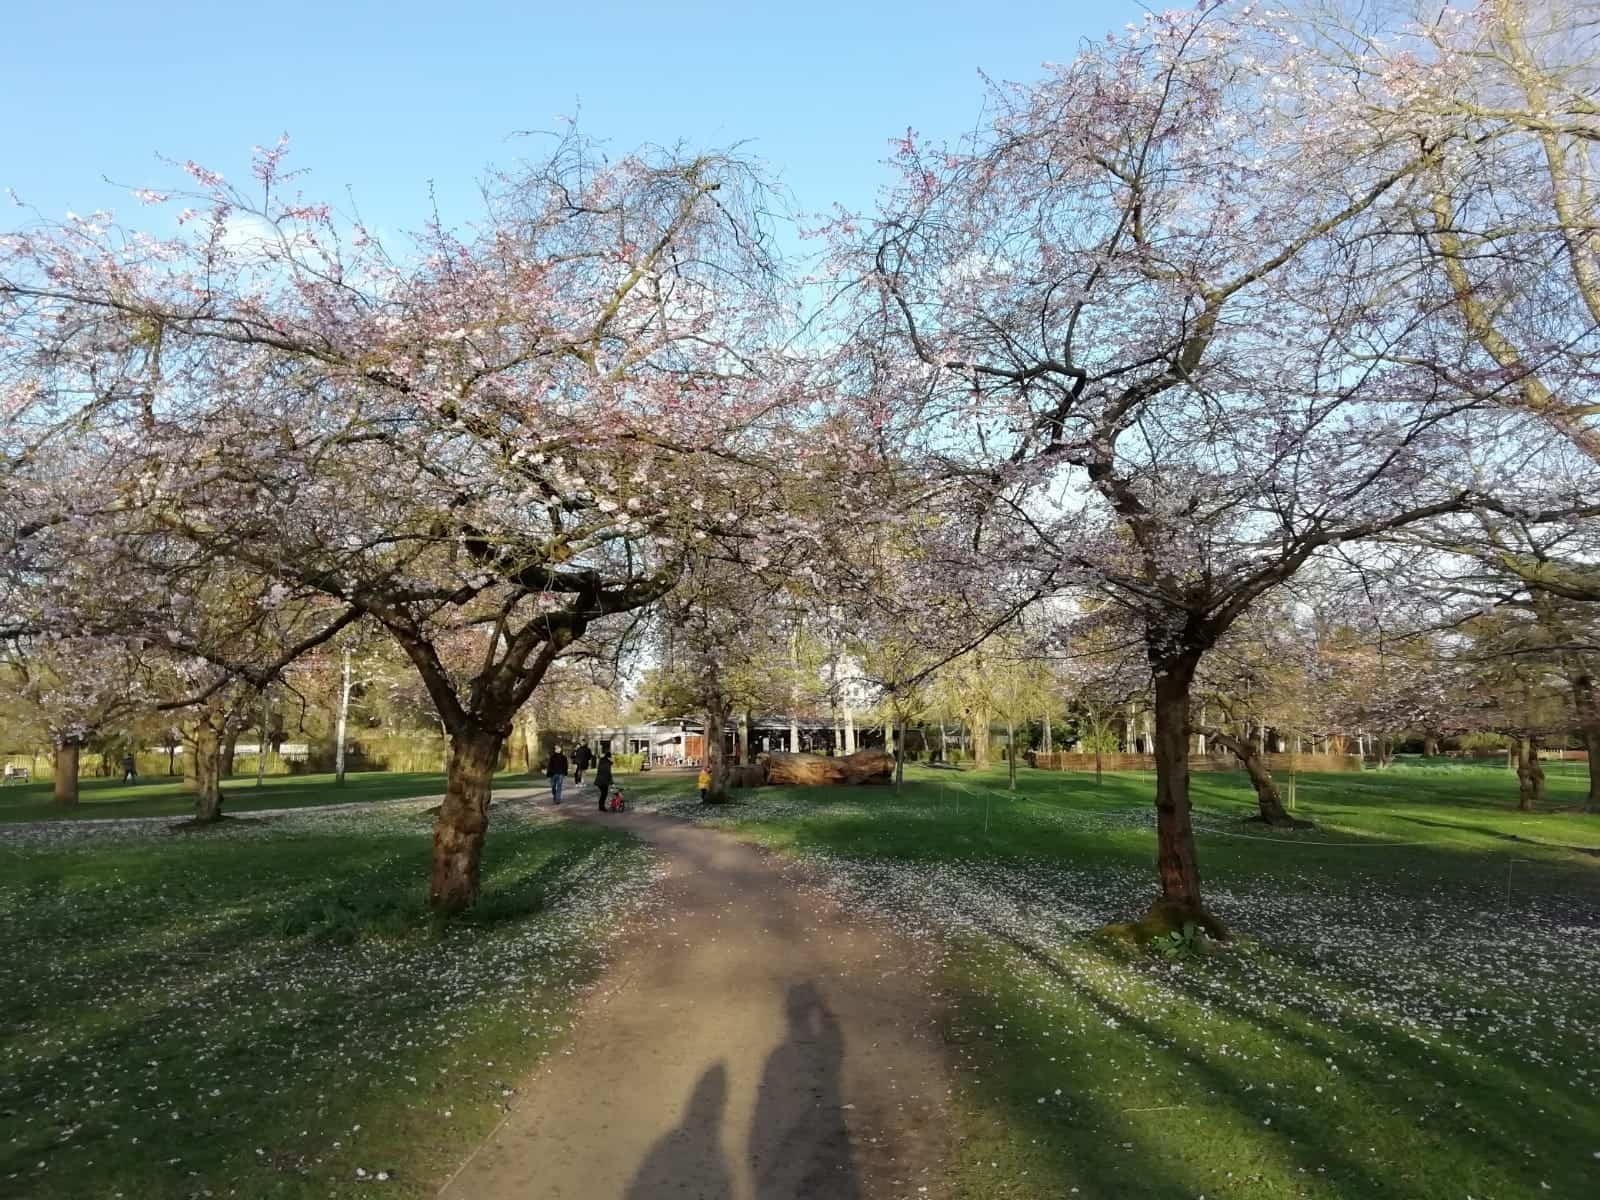 Blossom trees in Bushy Park, London